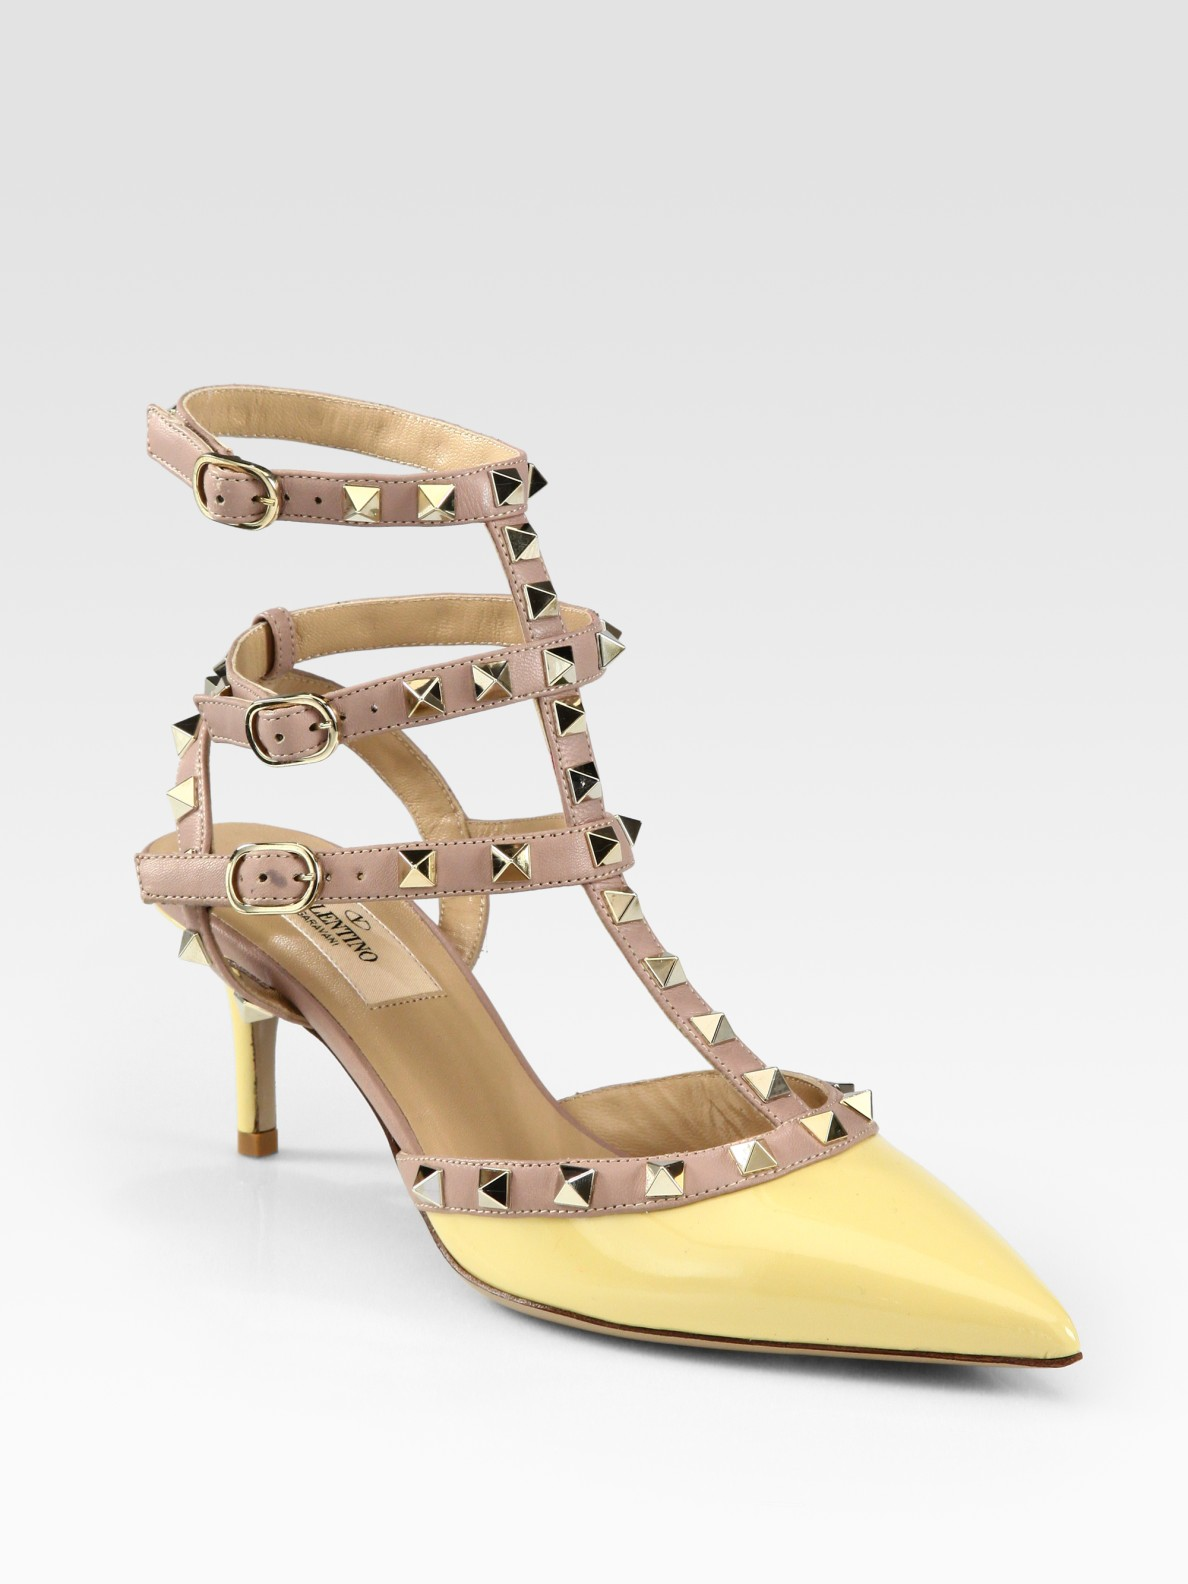 Valentino Rockstud Patent Leather Leather Pumps in Yellow | Lyst